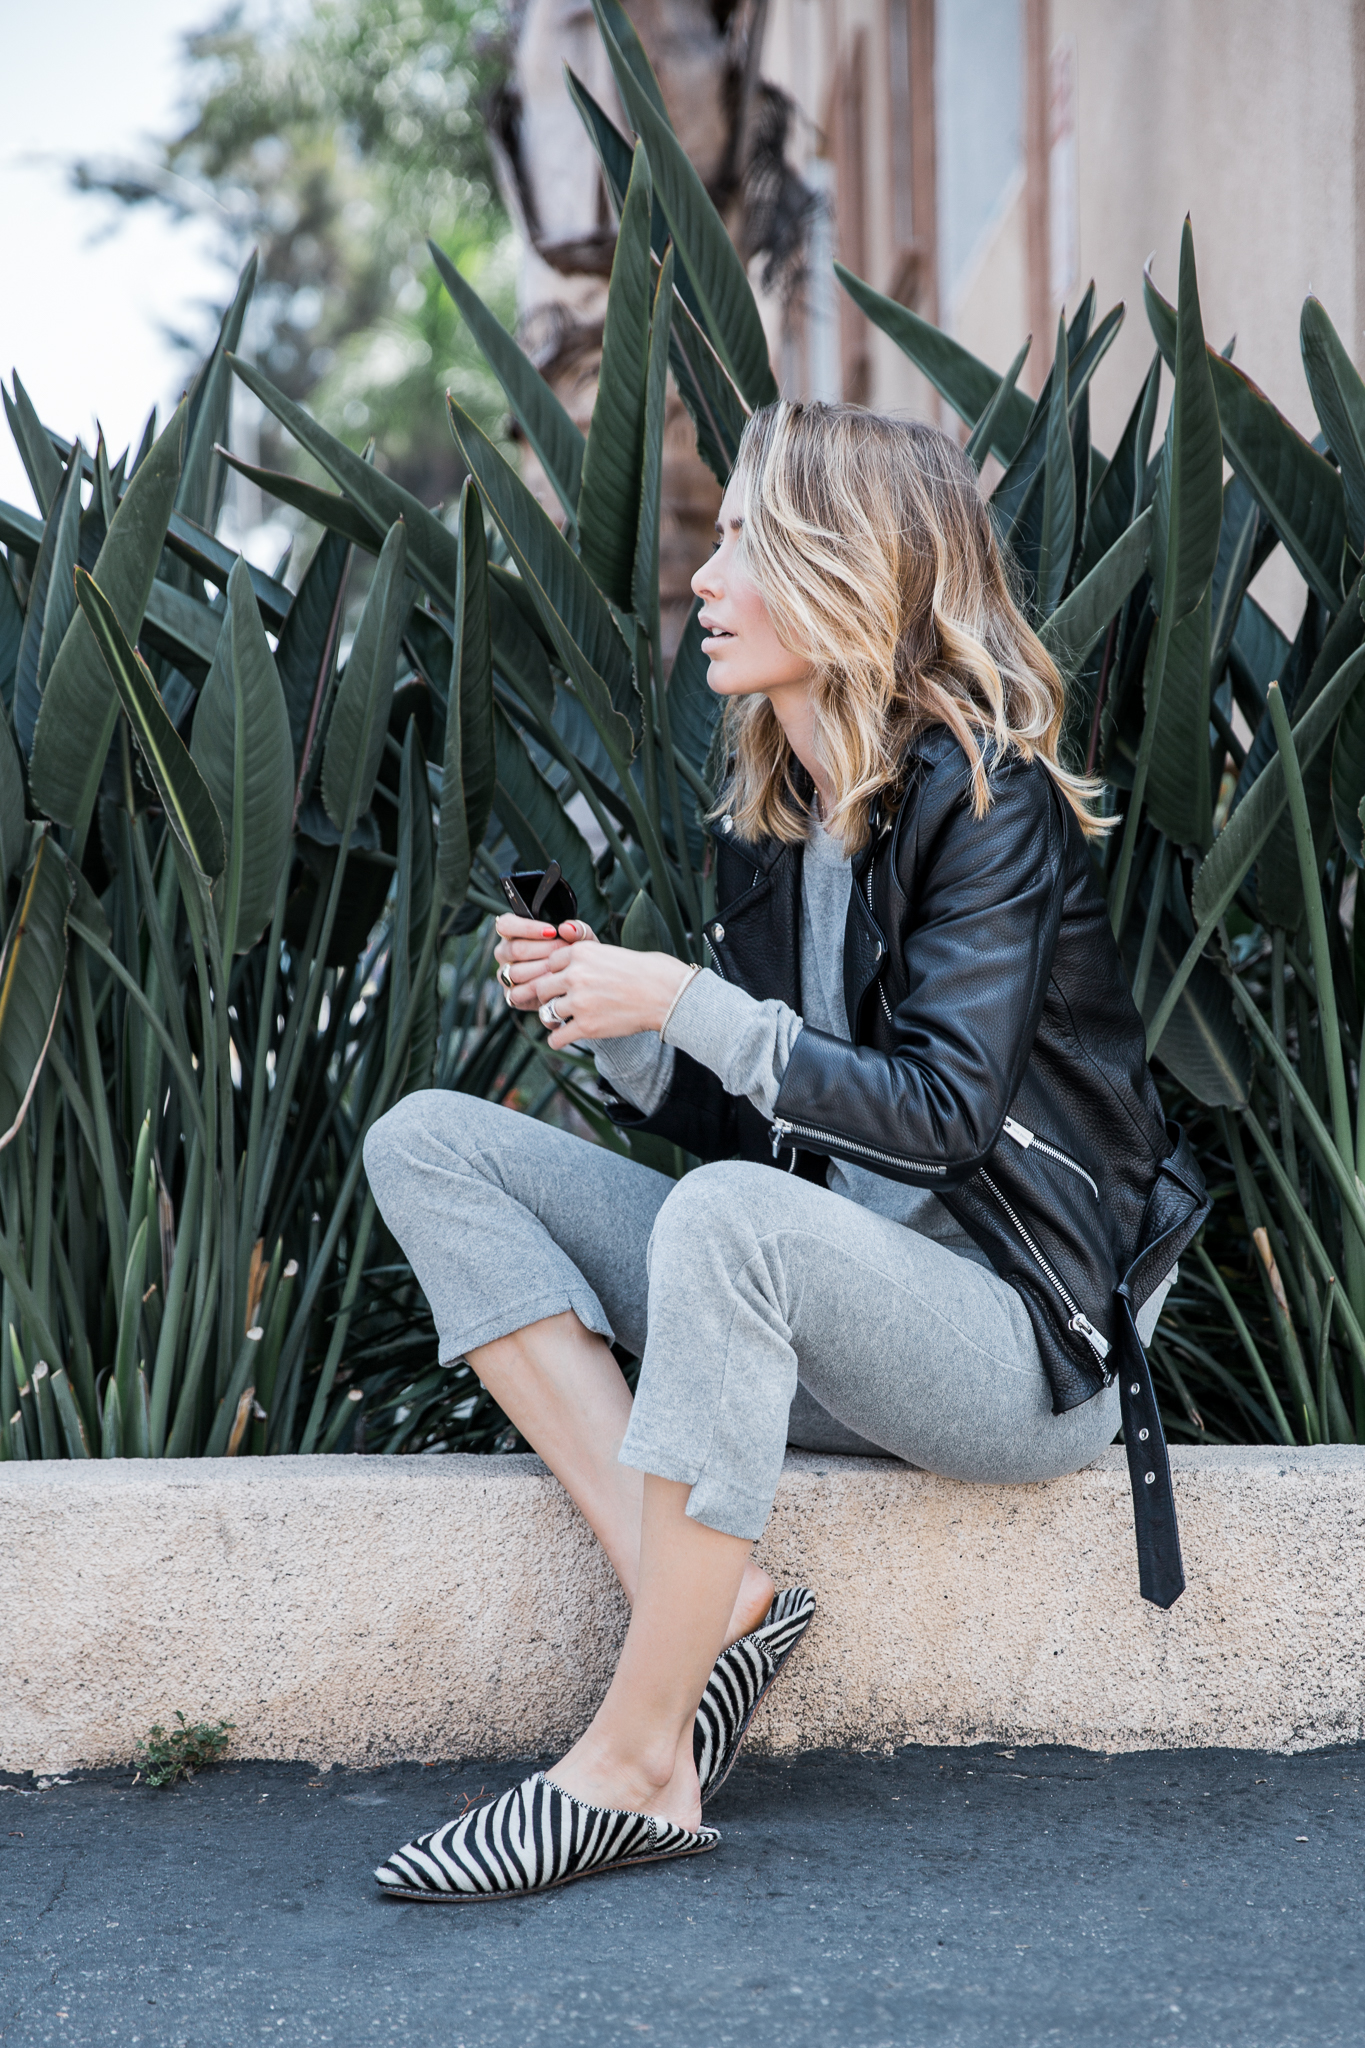 Leather jackets are perhaps the most adaptable piece of any girl's wardrobe. Anine Bing shows us how to rock leather over lounge-wear in this chic two piece from Ragdoll, paired with a cropped jacket with metallic zip detailing. Jacket: Anine Bing, Tracksuit/Shoes: Ragdoll.